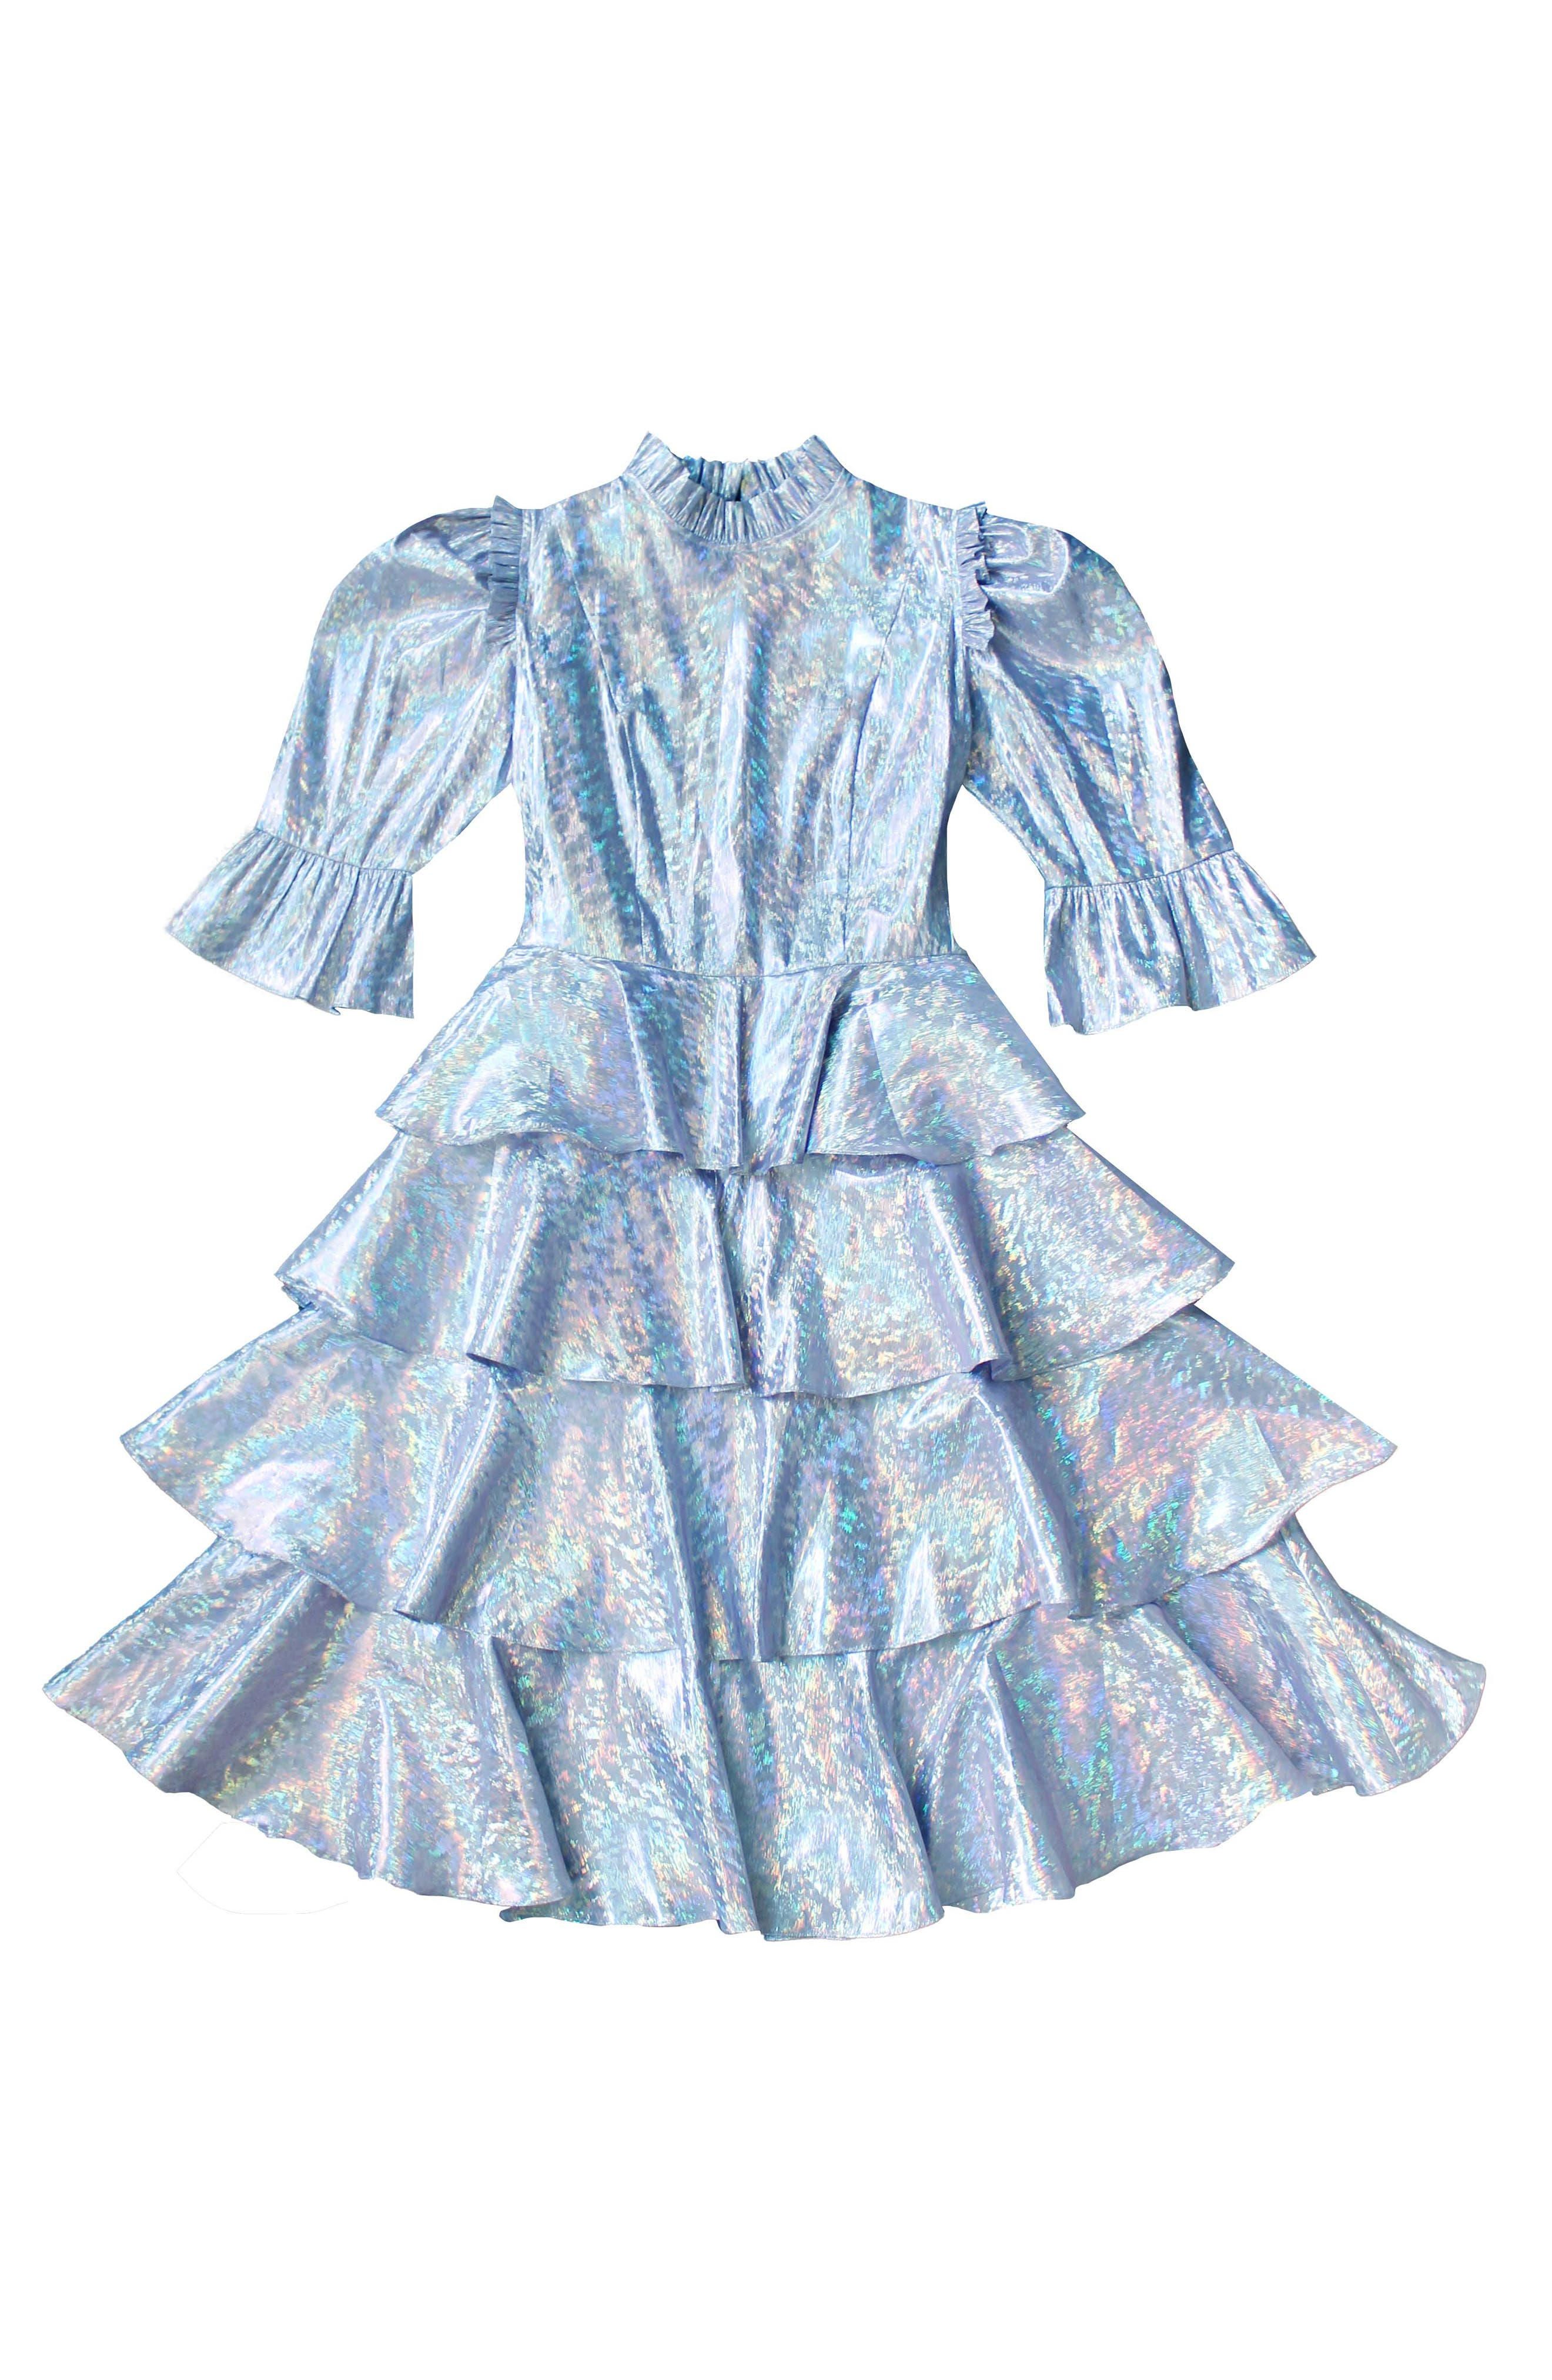 Spring Confection Holographic Tiered Ruffle Dress